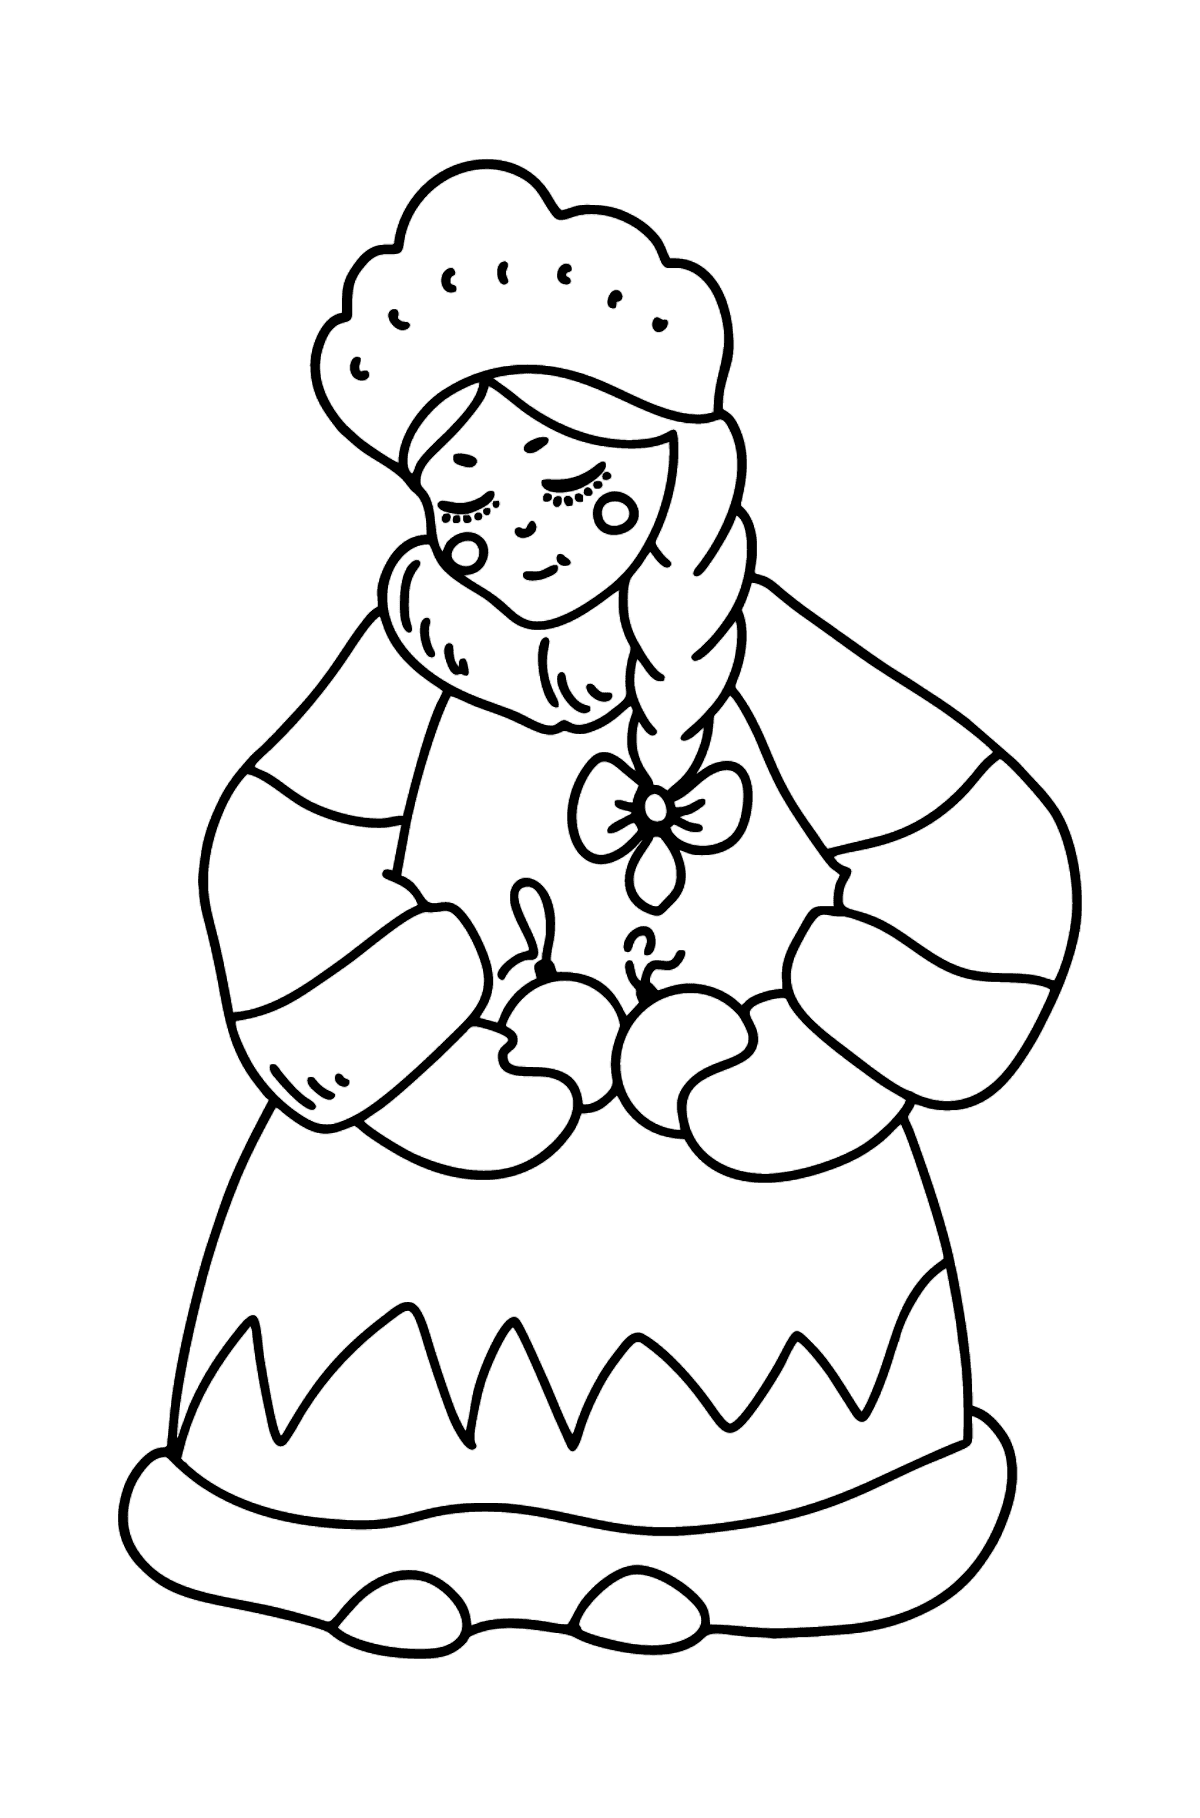 Snow princess coloring page - Coloring Pages for Kids